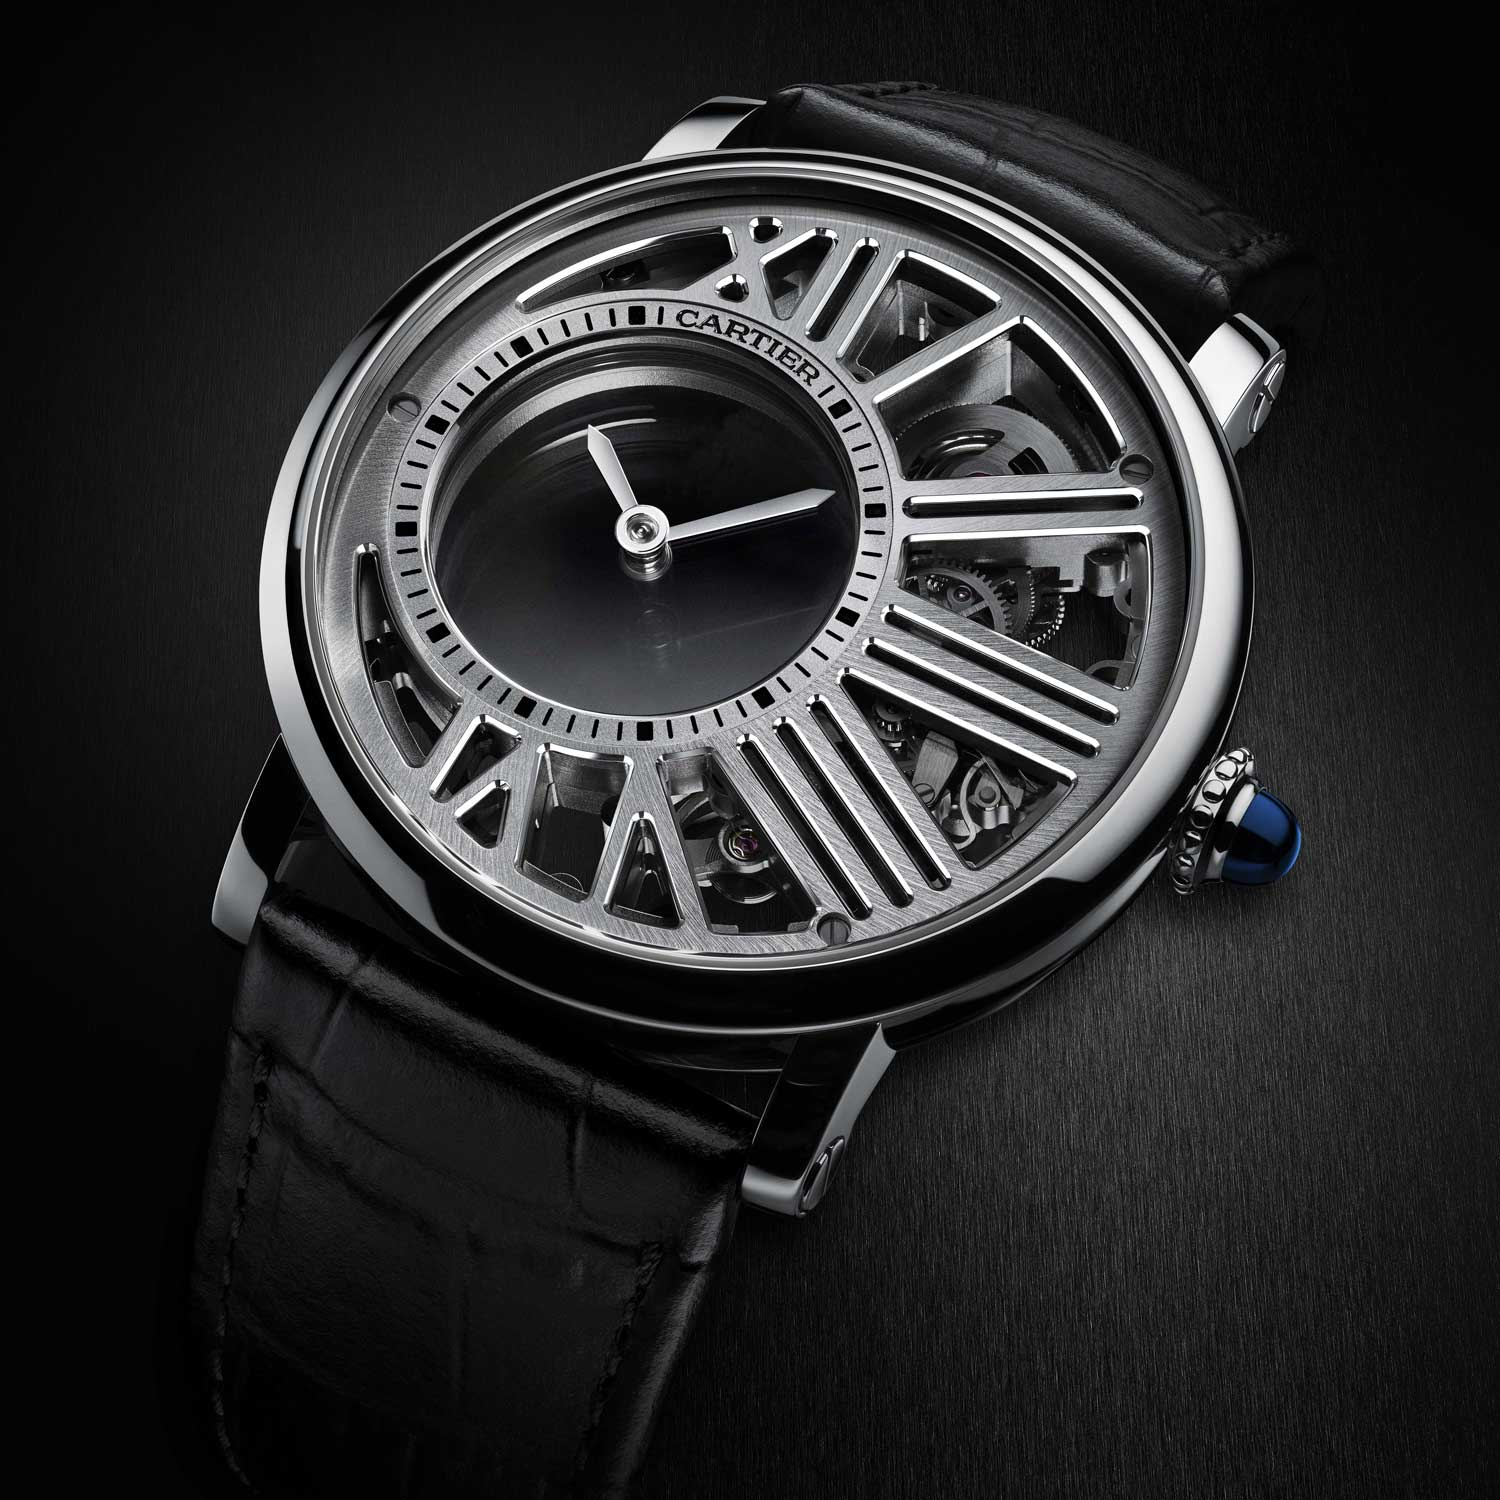 The Rotonde de Cartier Mysterious Hour Skeleton in white gold